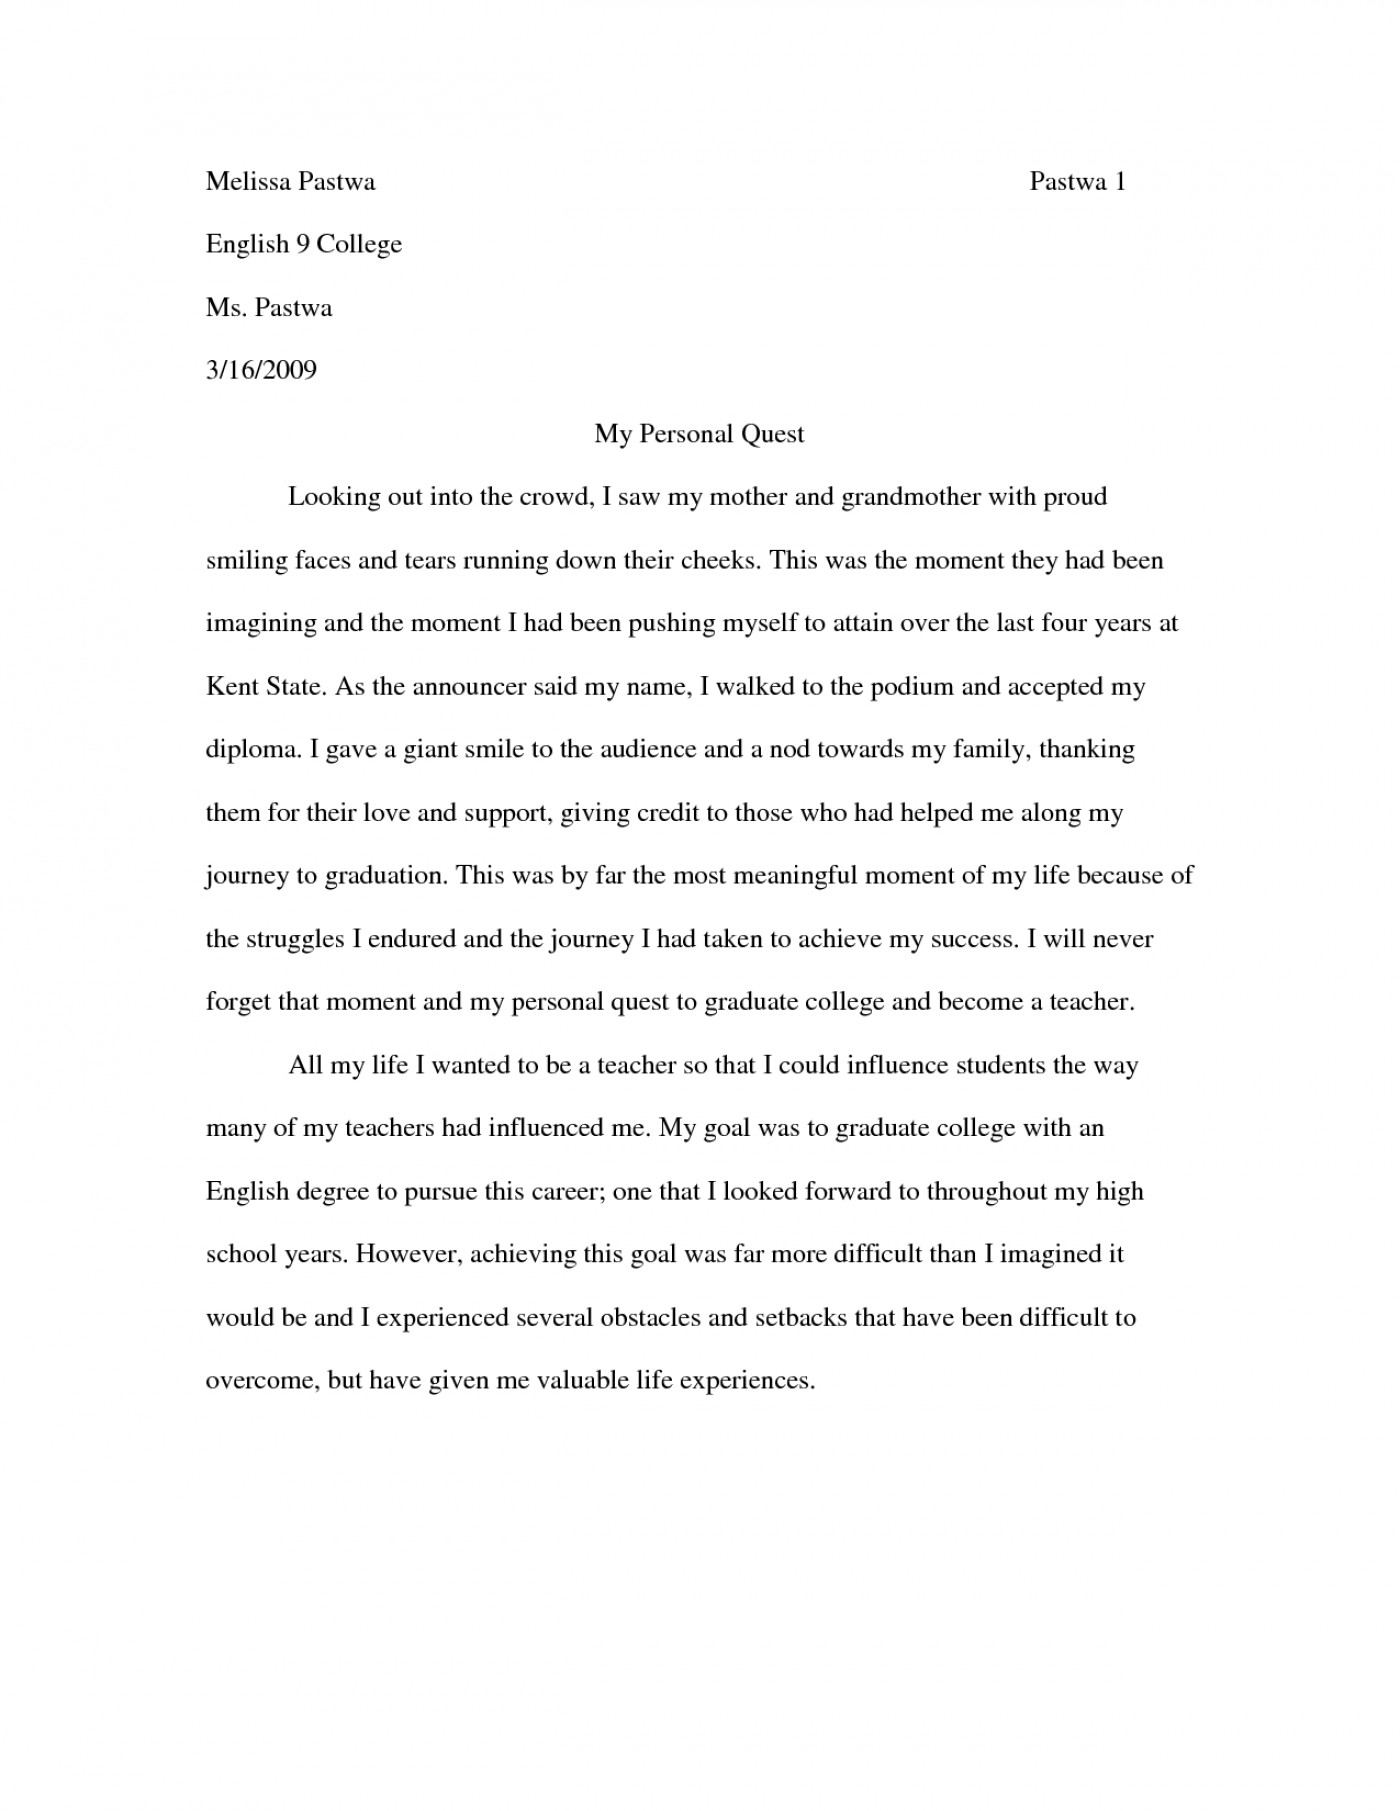 009 Writing Narrative Essay Example Dialogue Of L Amazing A About Being Judged Quizlet Powerpoint 1400